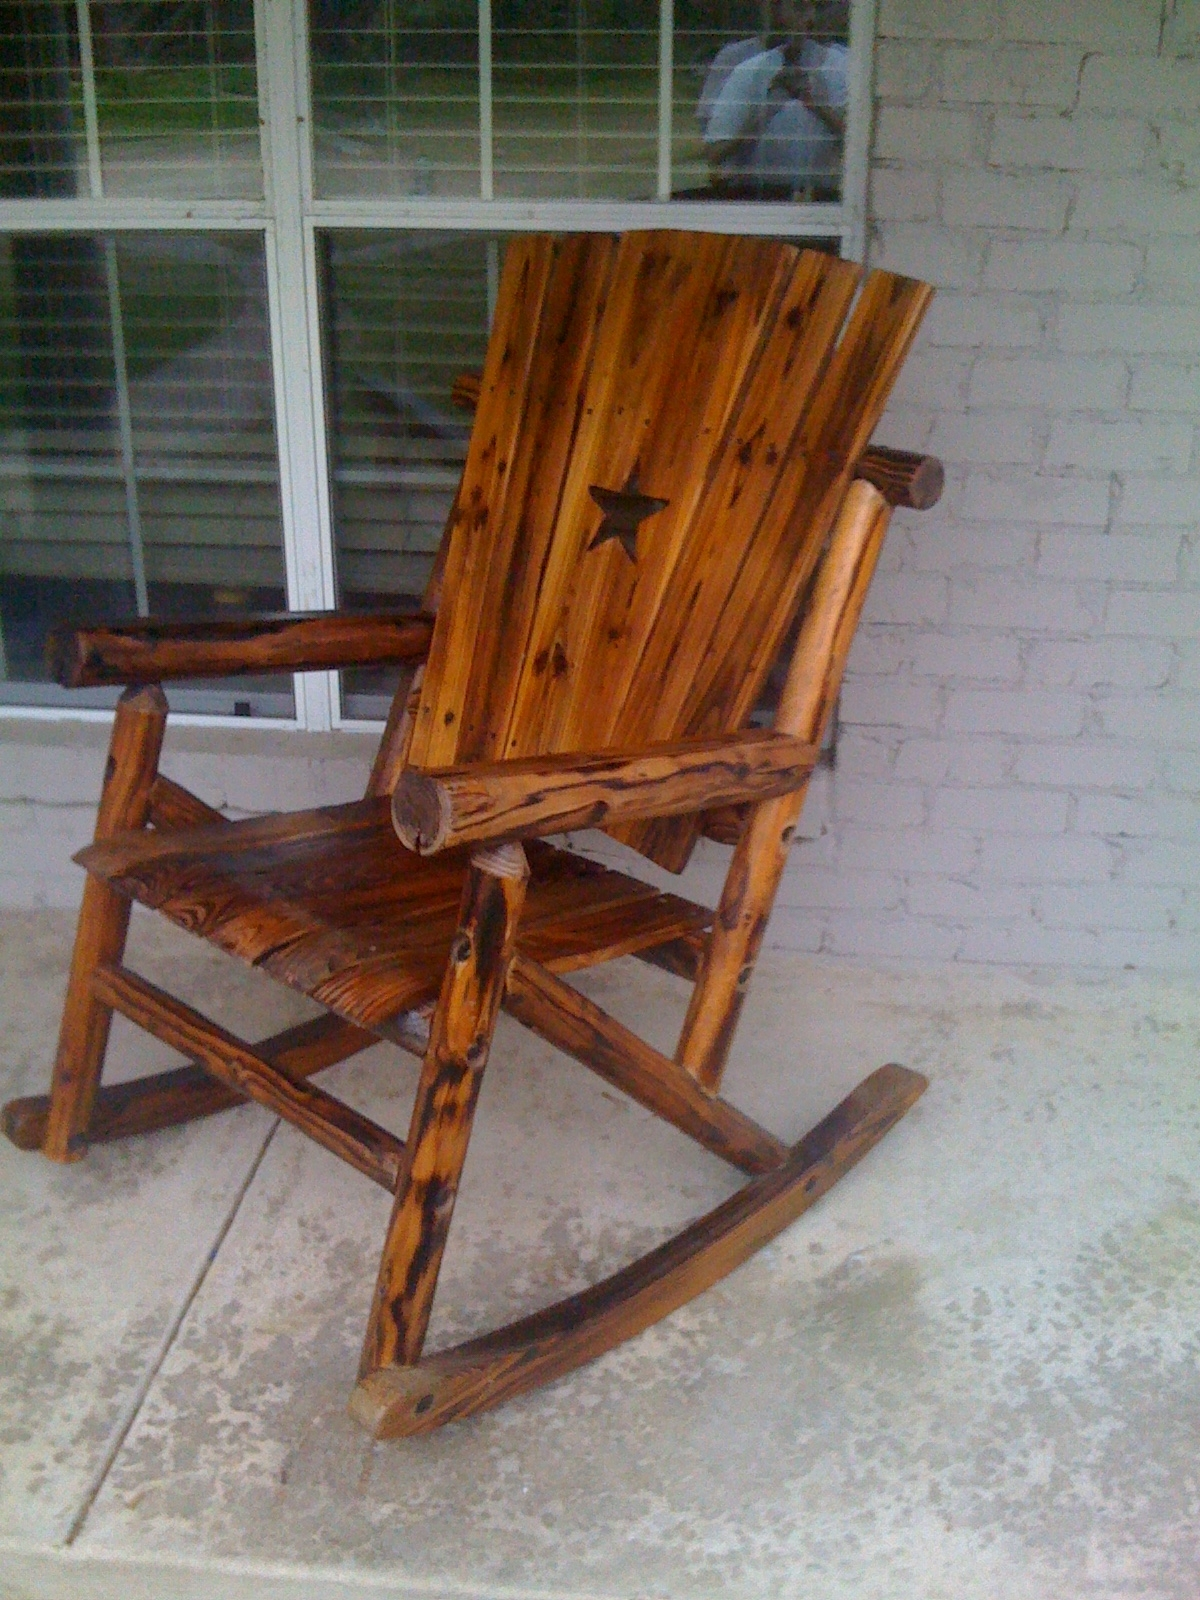 Outdoor Wooden Rocking Chairs Rustic : Pleasure Outdoor Wooden With Regard To Wooden Patio Rocking Chairs (#9 of 15)